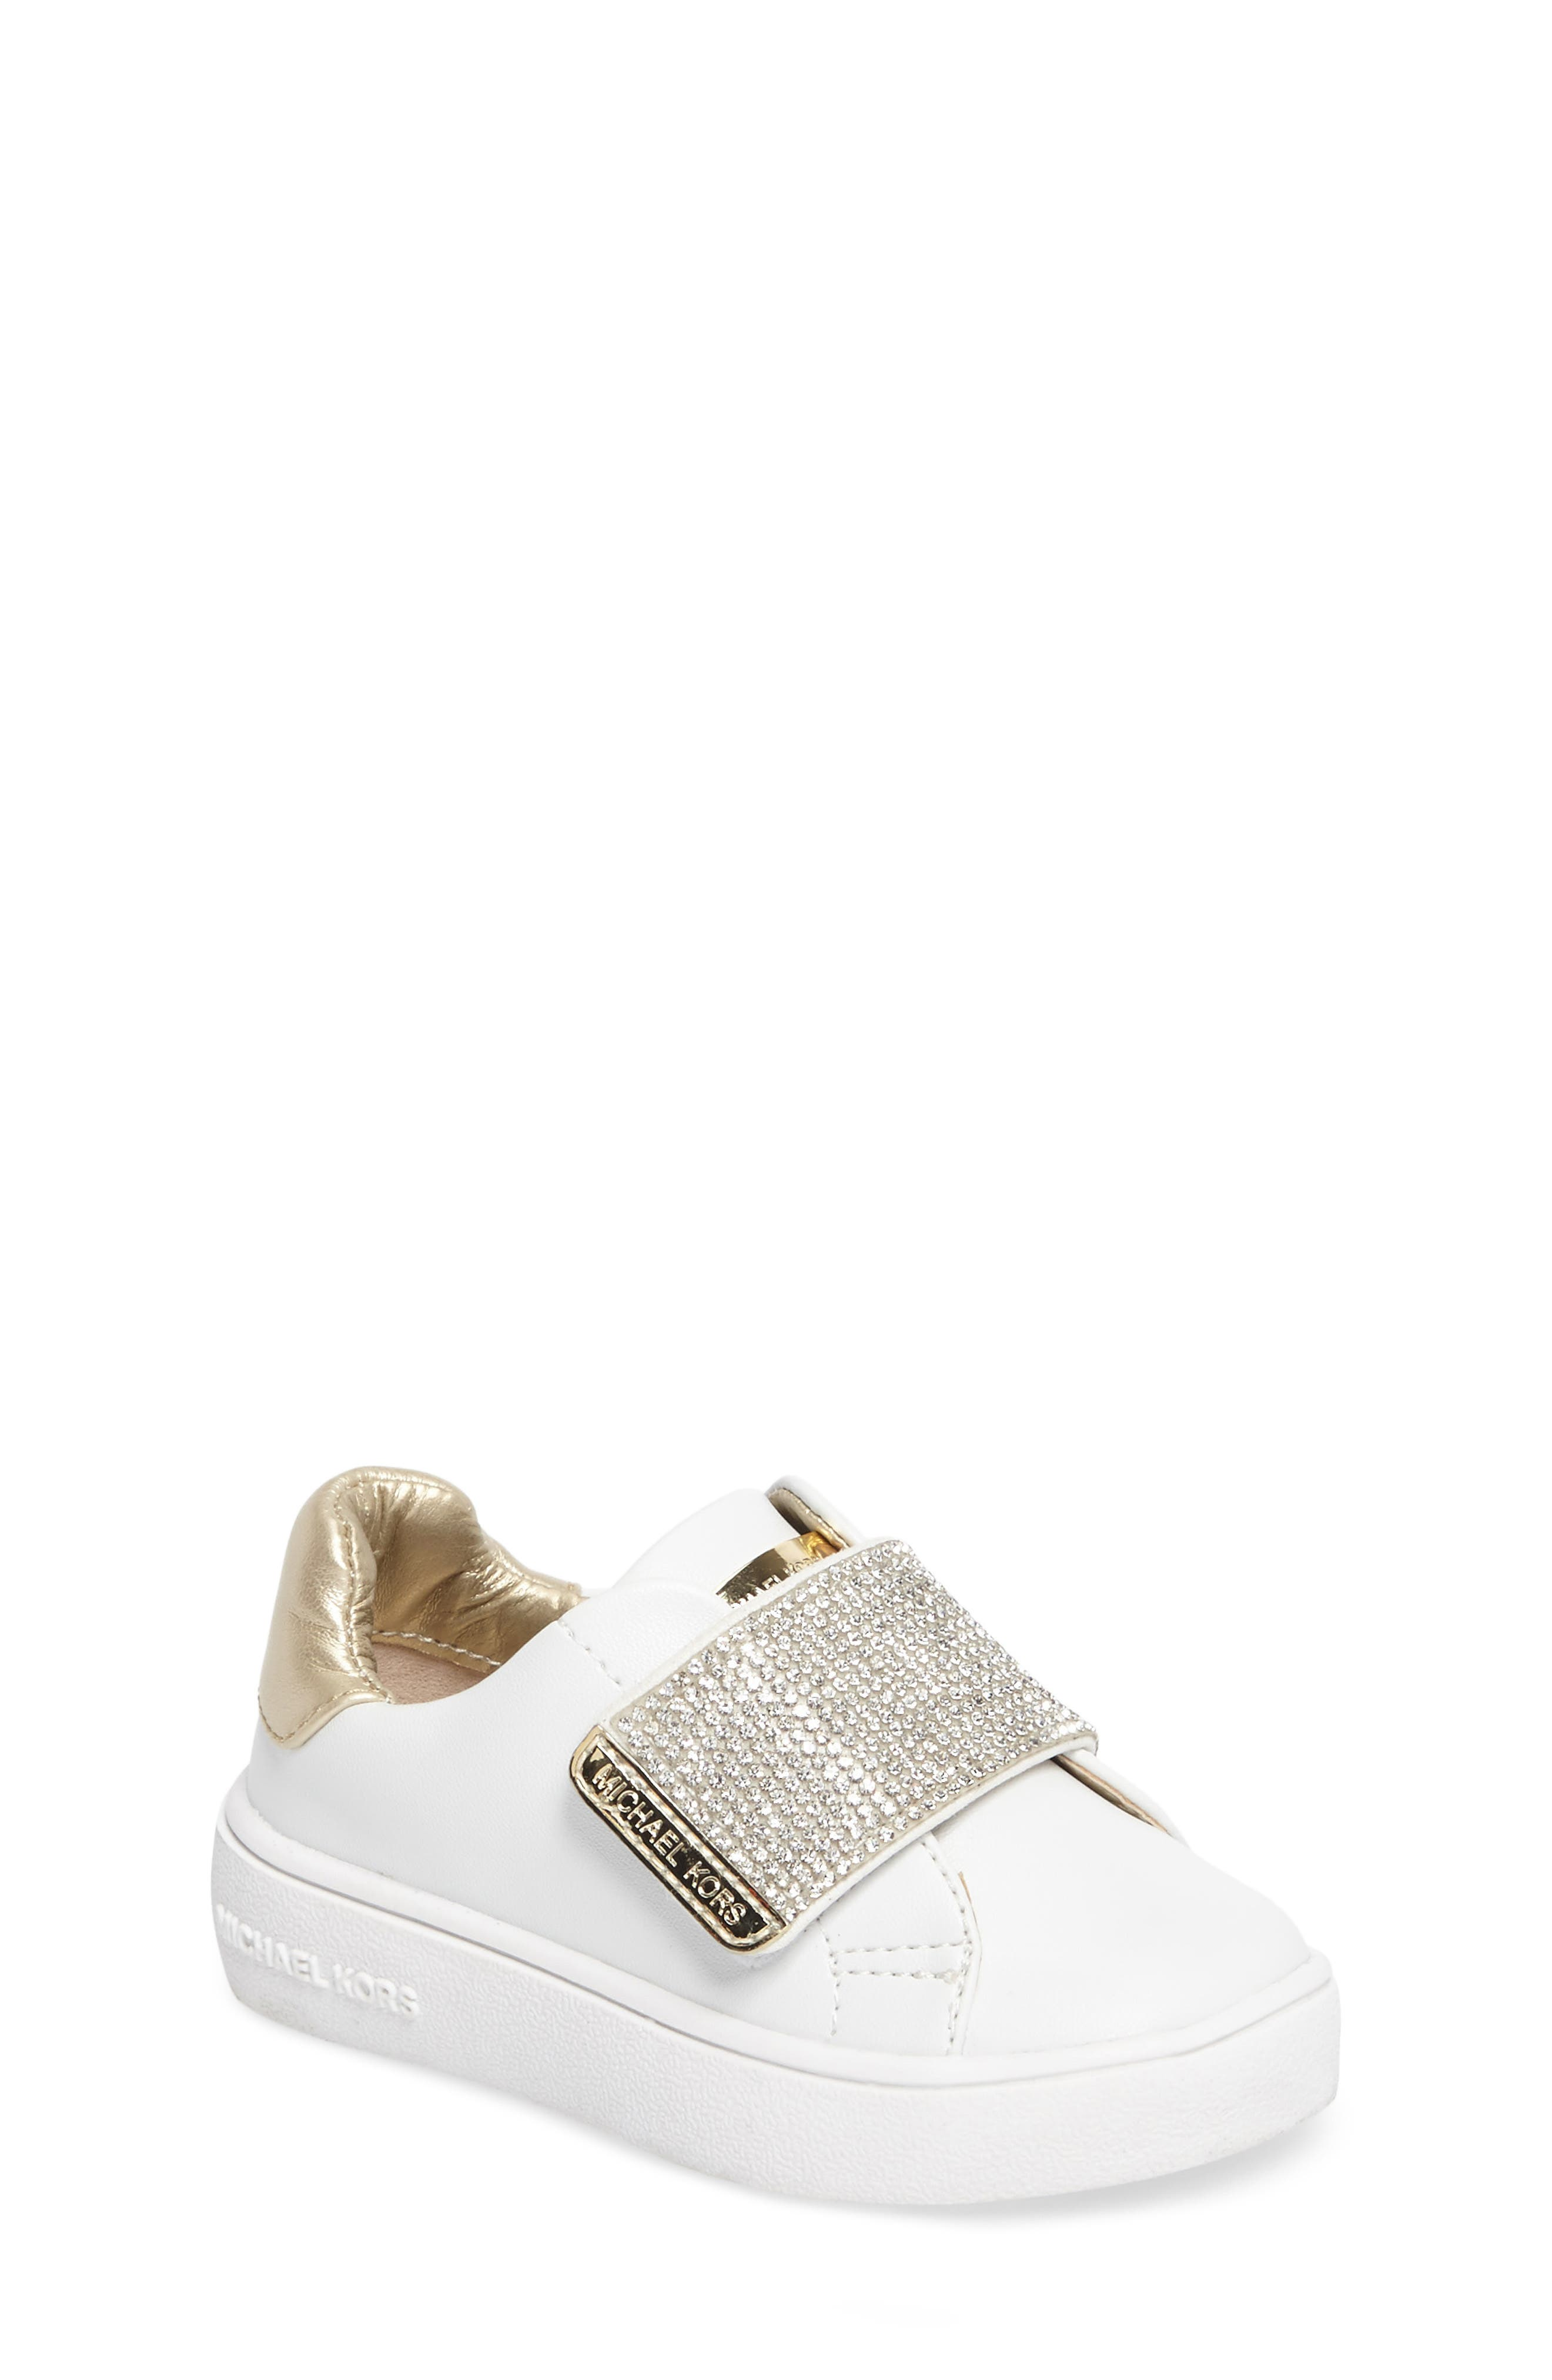 Ivy Candy Sneaker,                         Main,                         color, WHITE GOLD